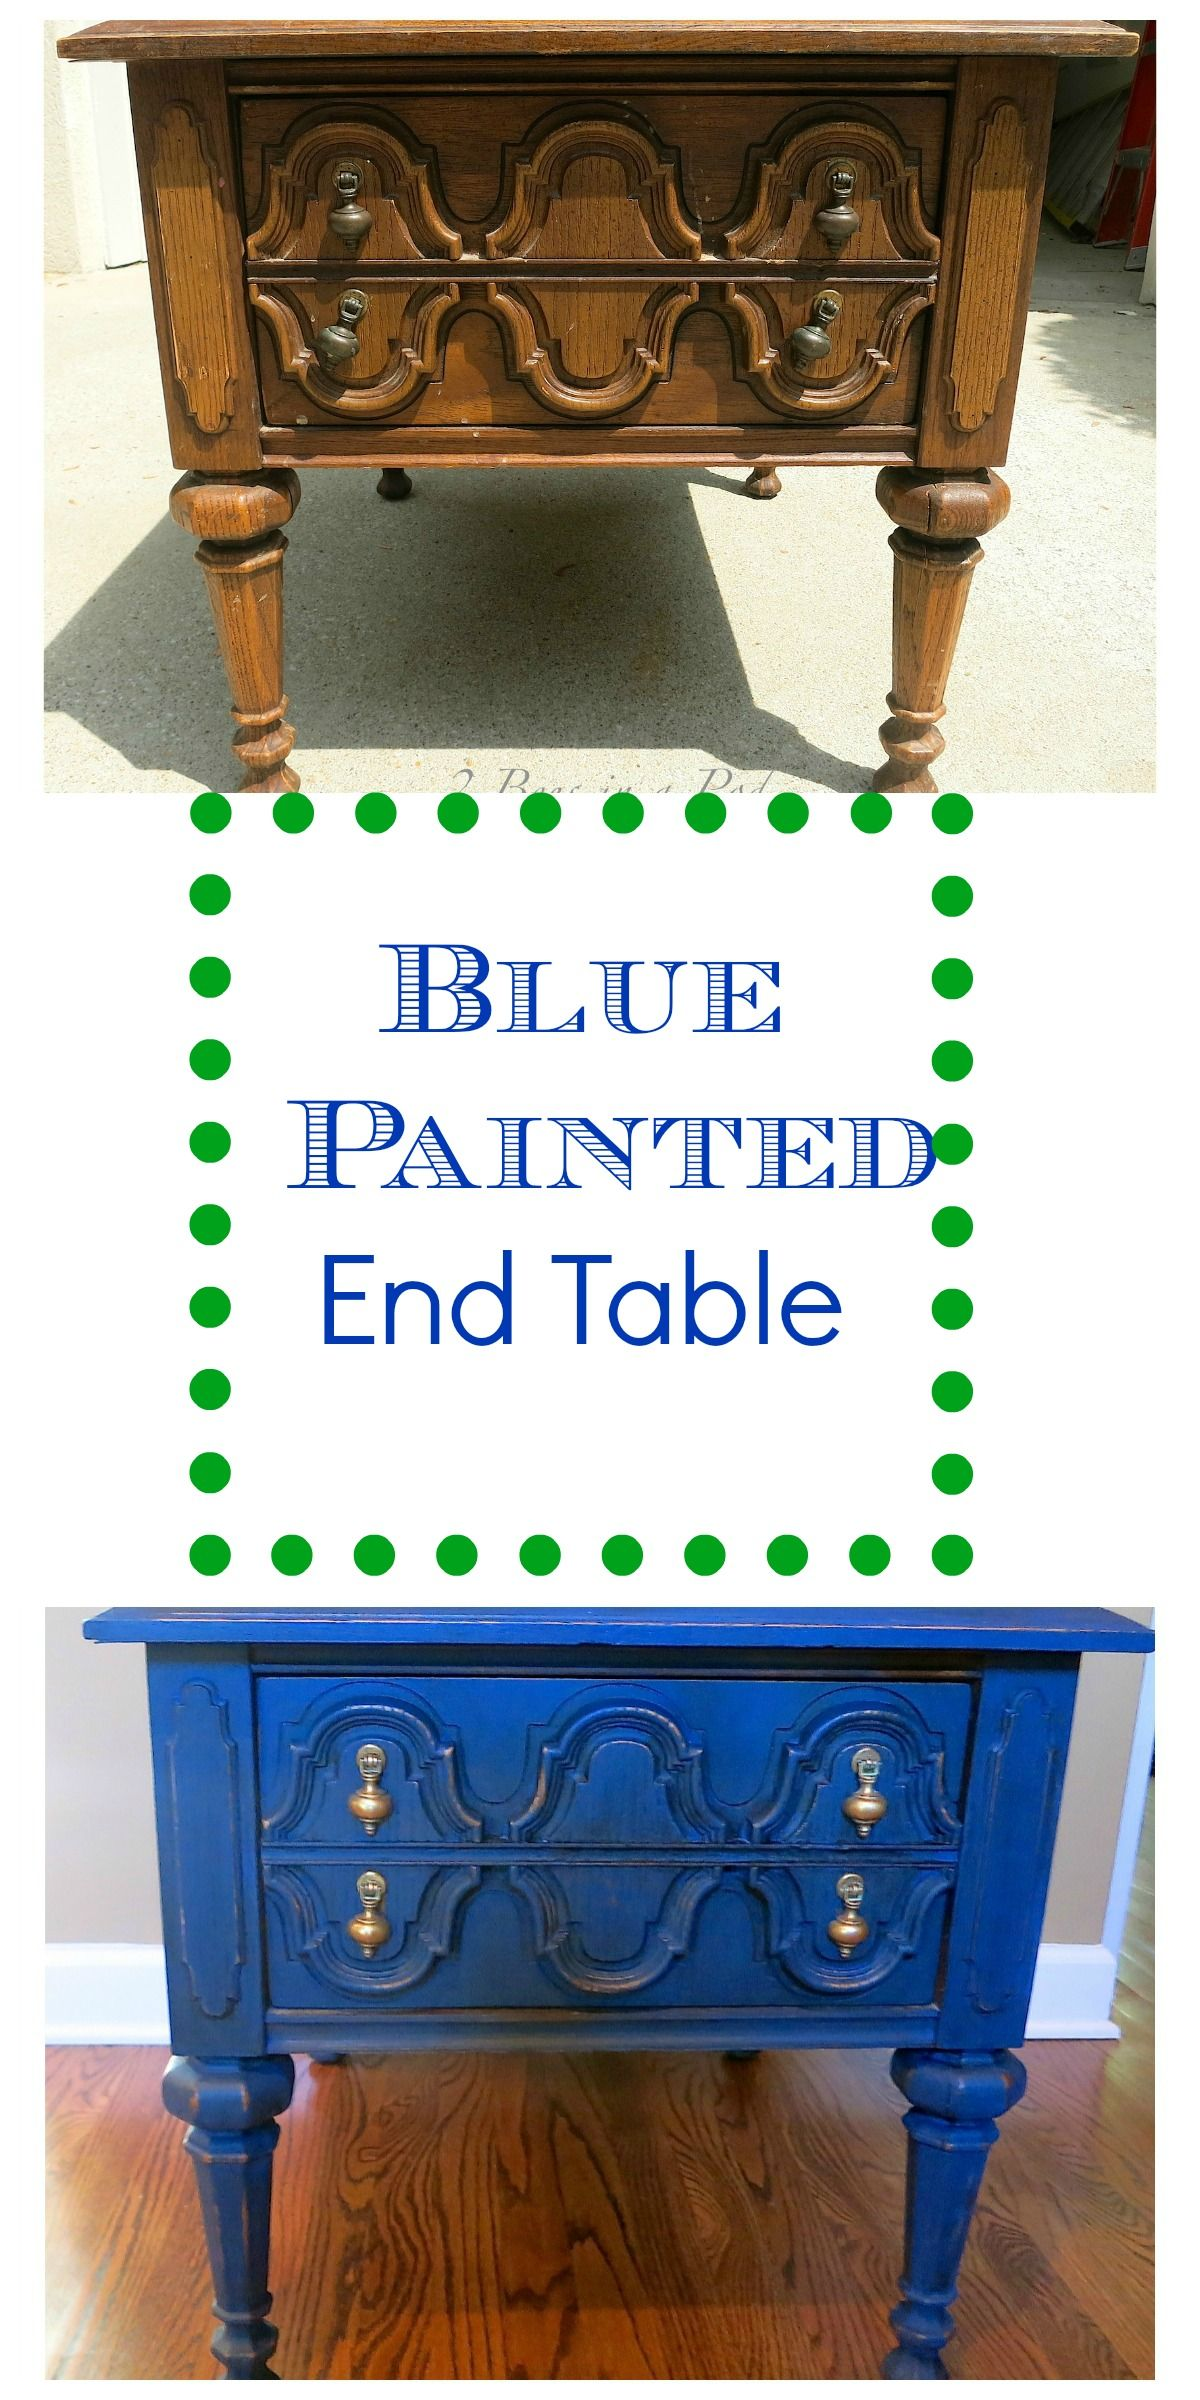 blue painted end table makeover painting tables with customer color homemade chalk paint modern dog crate furniture industrial pipe console fire pit dining chairs distressing